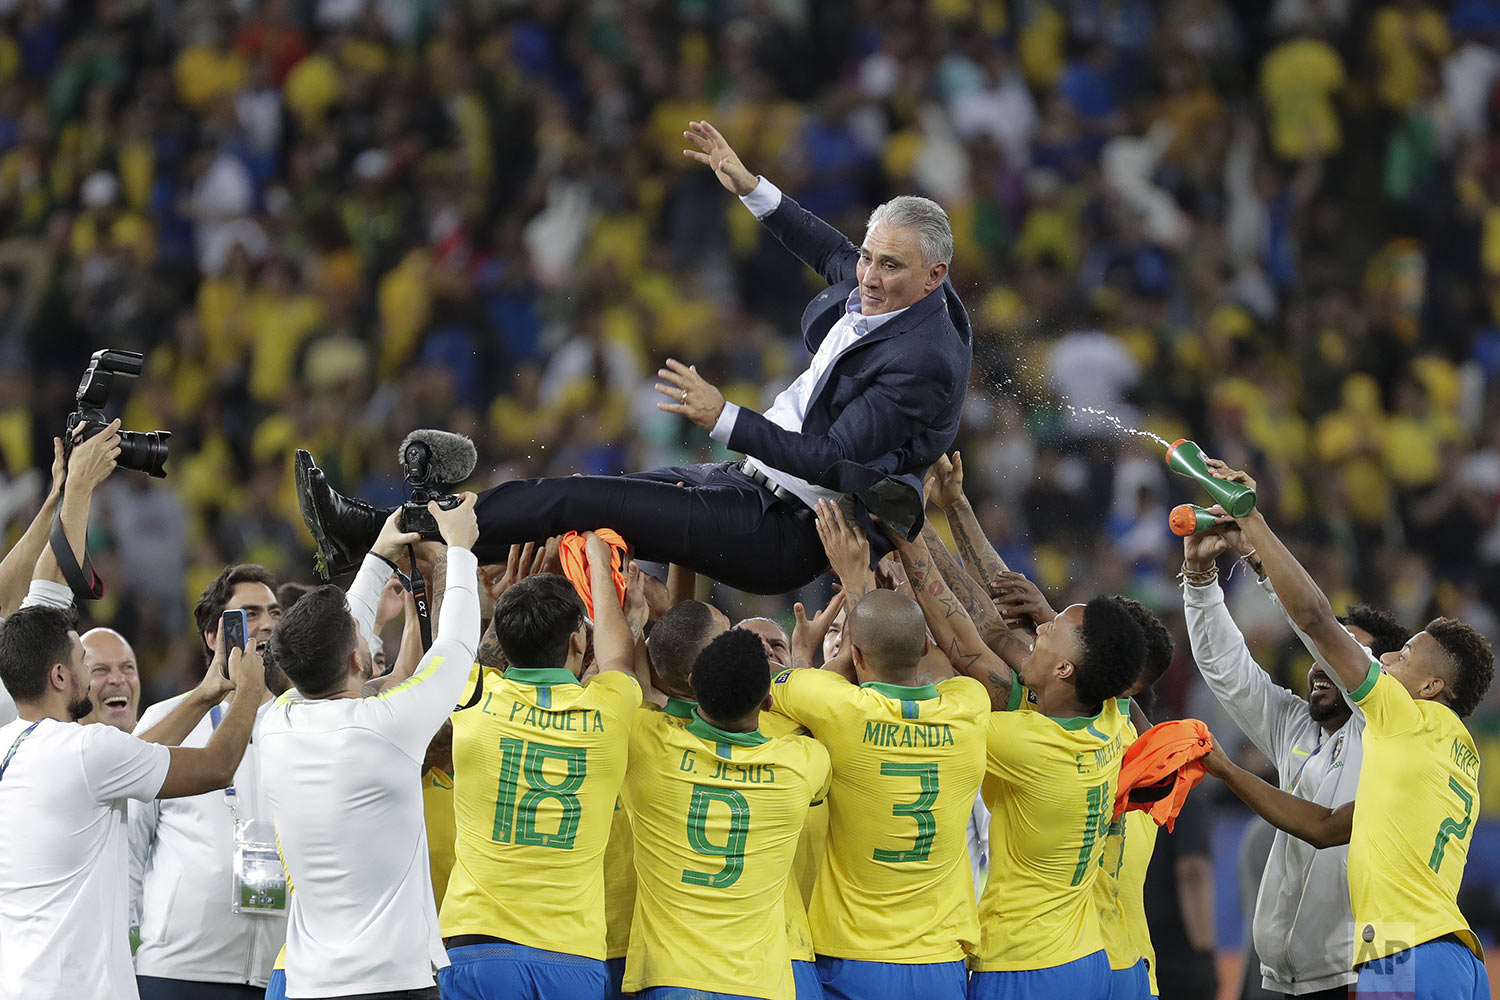 Brazil's coach Tite is thrown in the air by players to celebrate their 3-1 victory over Peru at the end of the final Copa America soccer match at Maracana stadium in Rio de Janeiro, Brazil, Sunday, July 7, 2019. (AP Photo/Leo Correa)